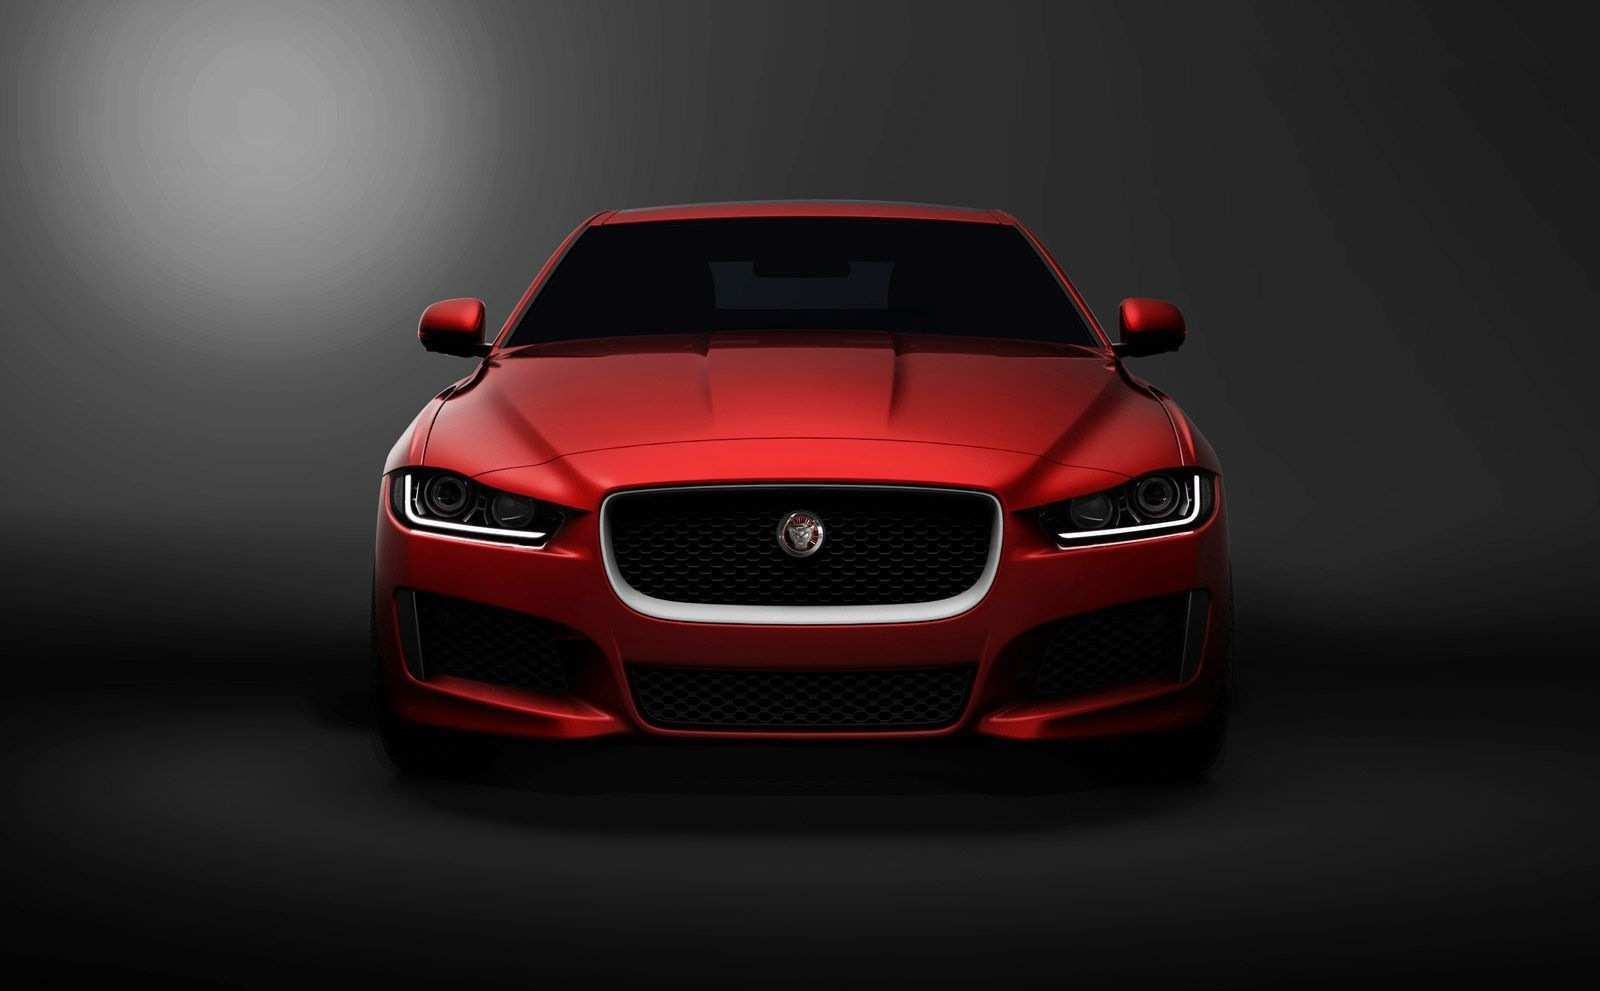 38 Great 2020 Jaguar Xf Rs Price with 2020 Jaguar Xf Rs